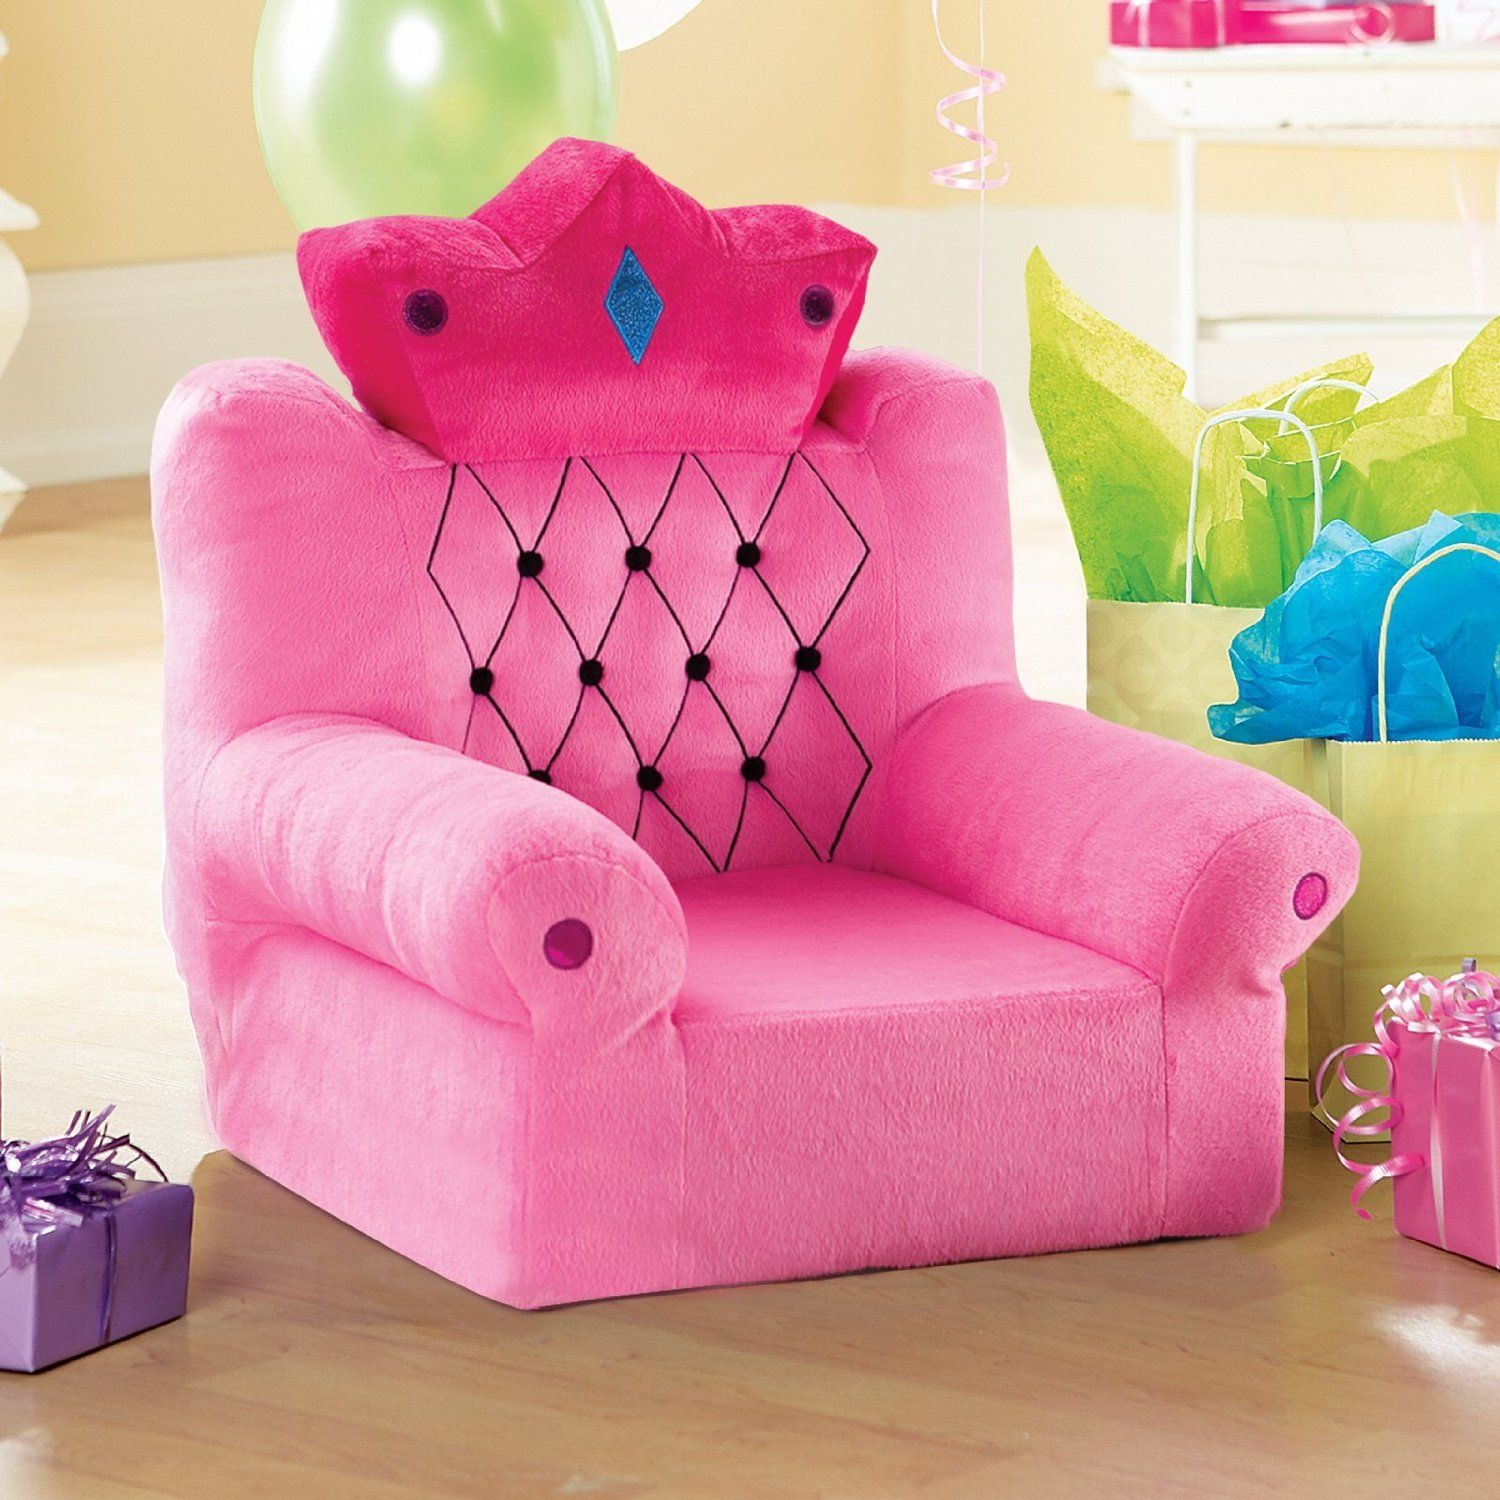 This Is KENDAL Pink Princess Throne Couch For Kids Years Old A Perfect Birthday Gift Girl